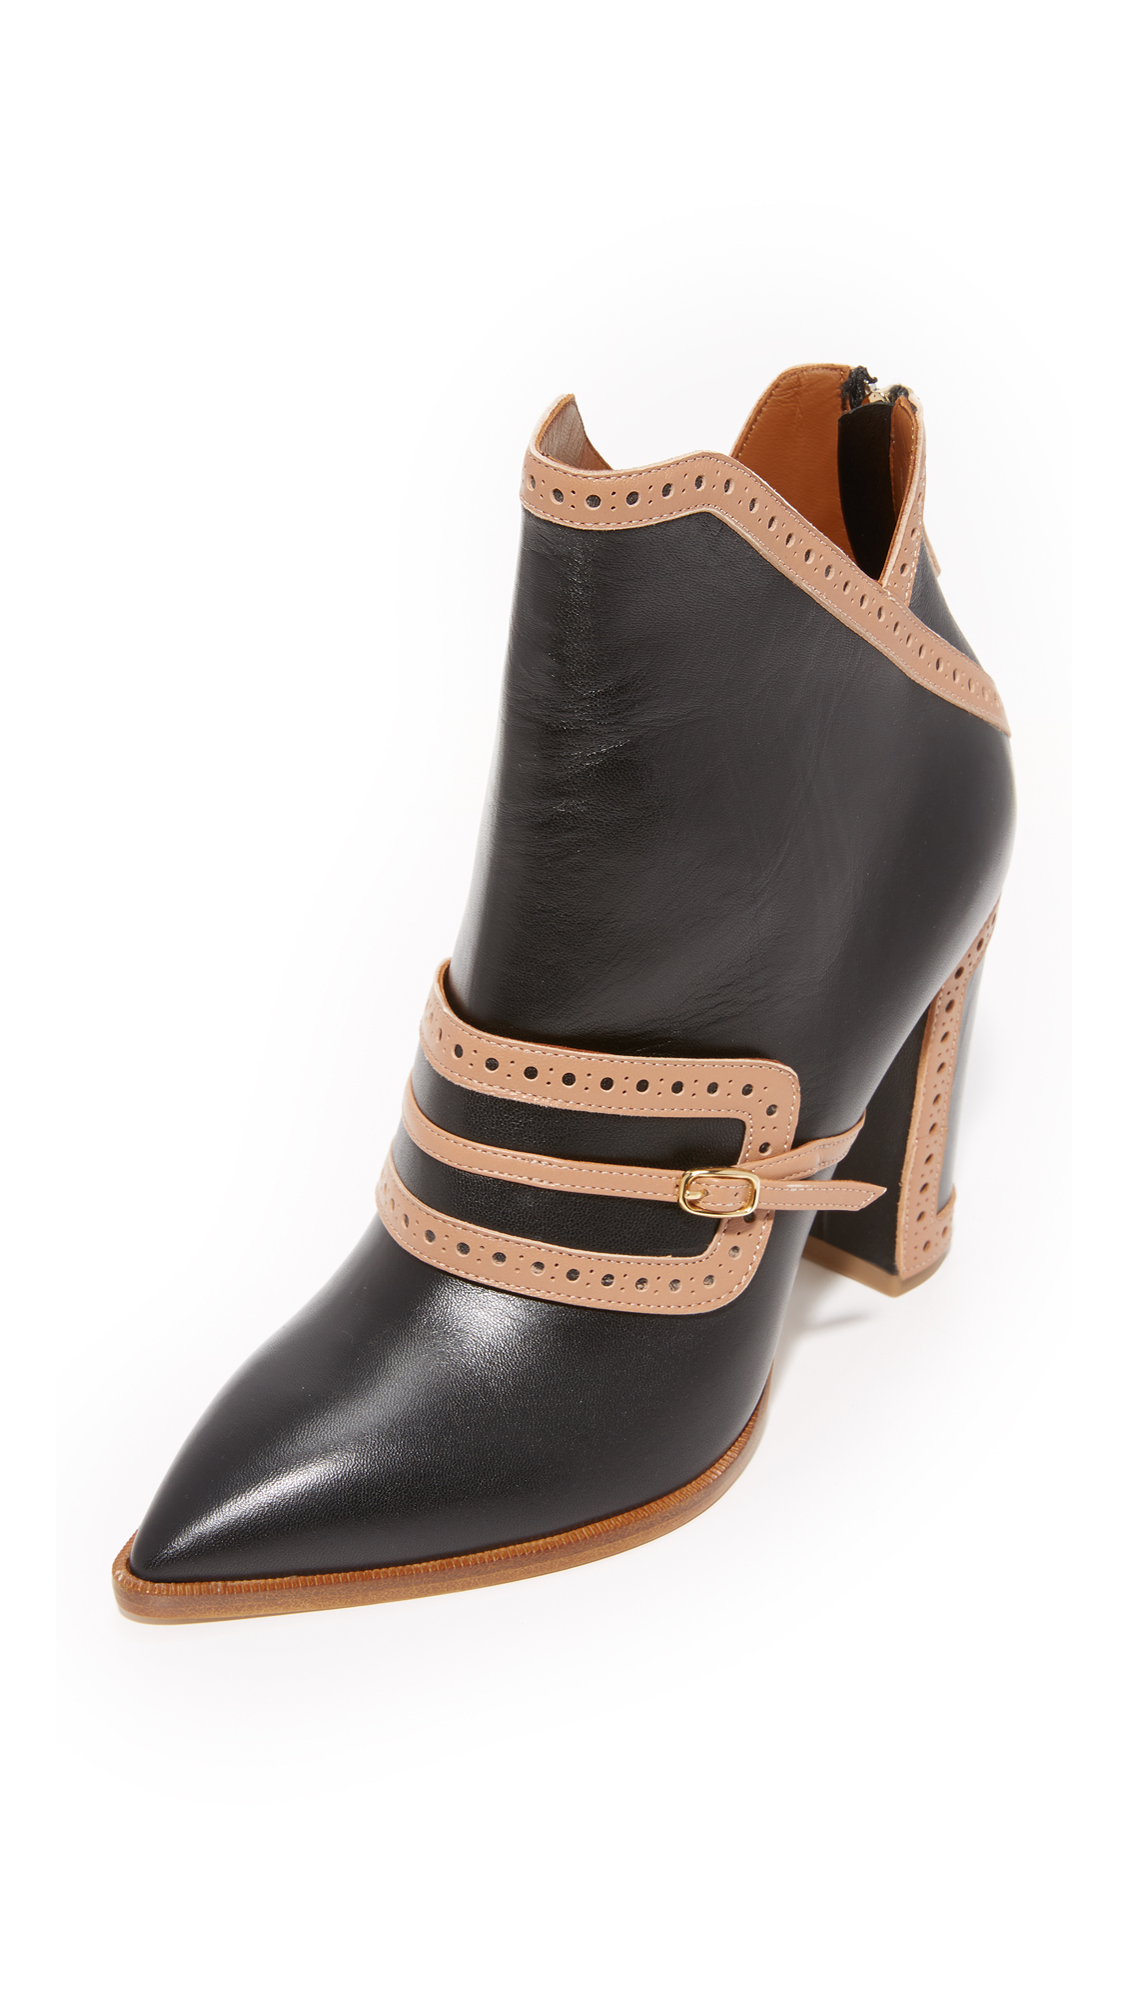 Malone Souliers Flora Booties - Black/Nude